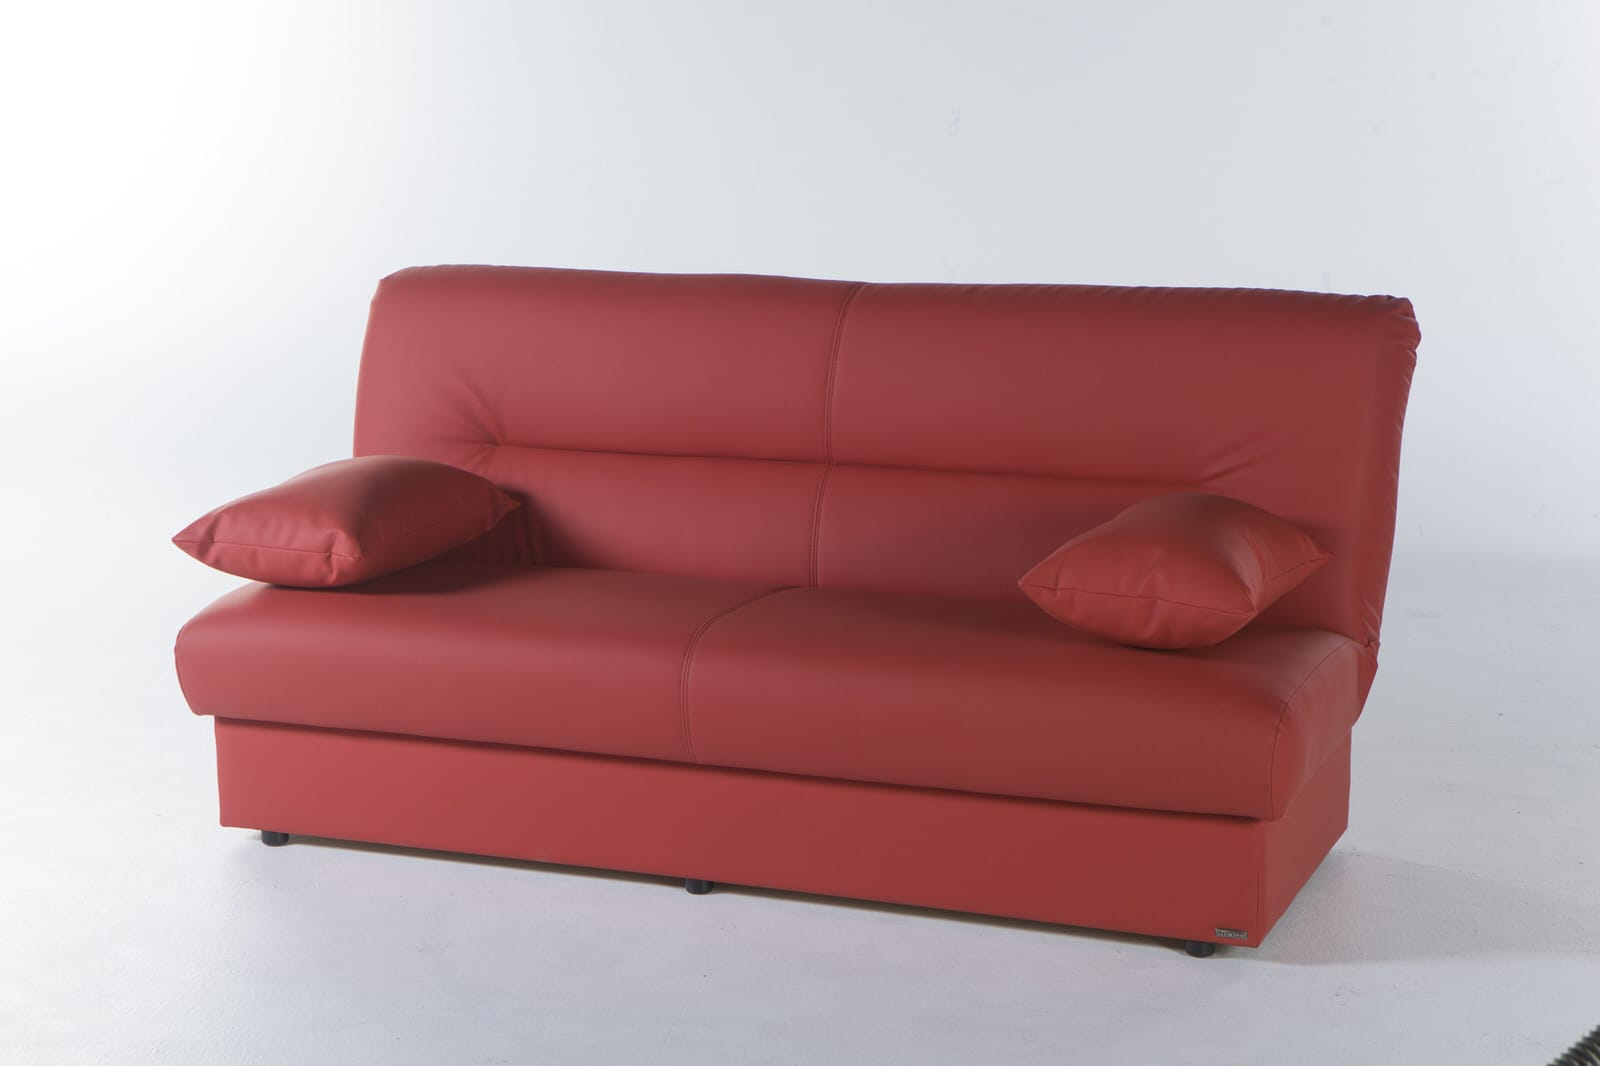 Regata Escudo Red Convertible Sofa Bed by Istikbal Furniture